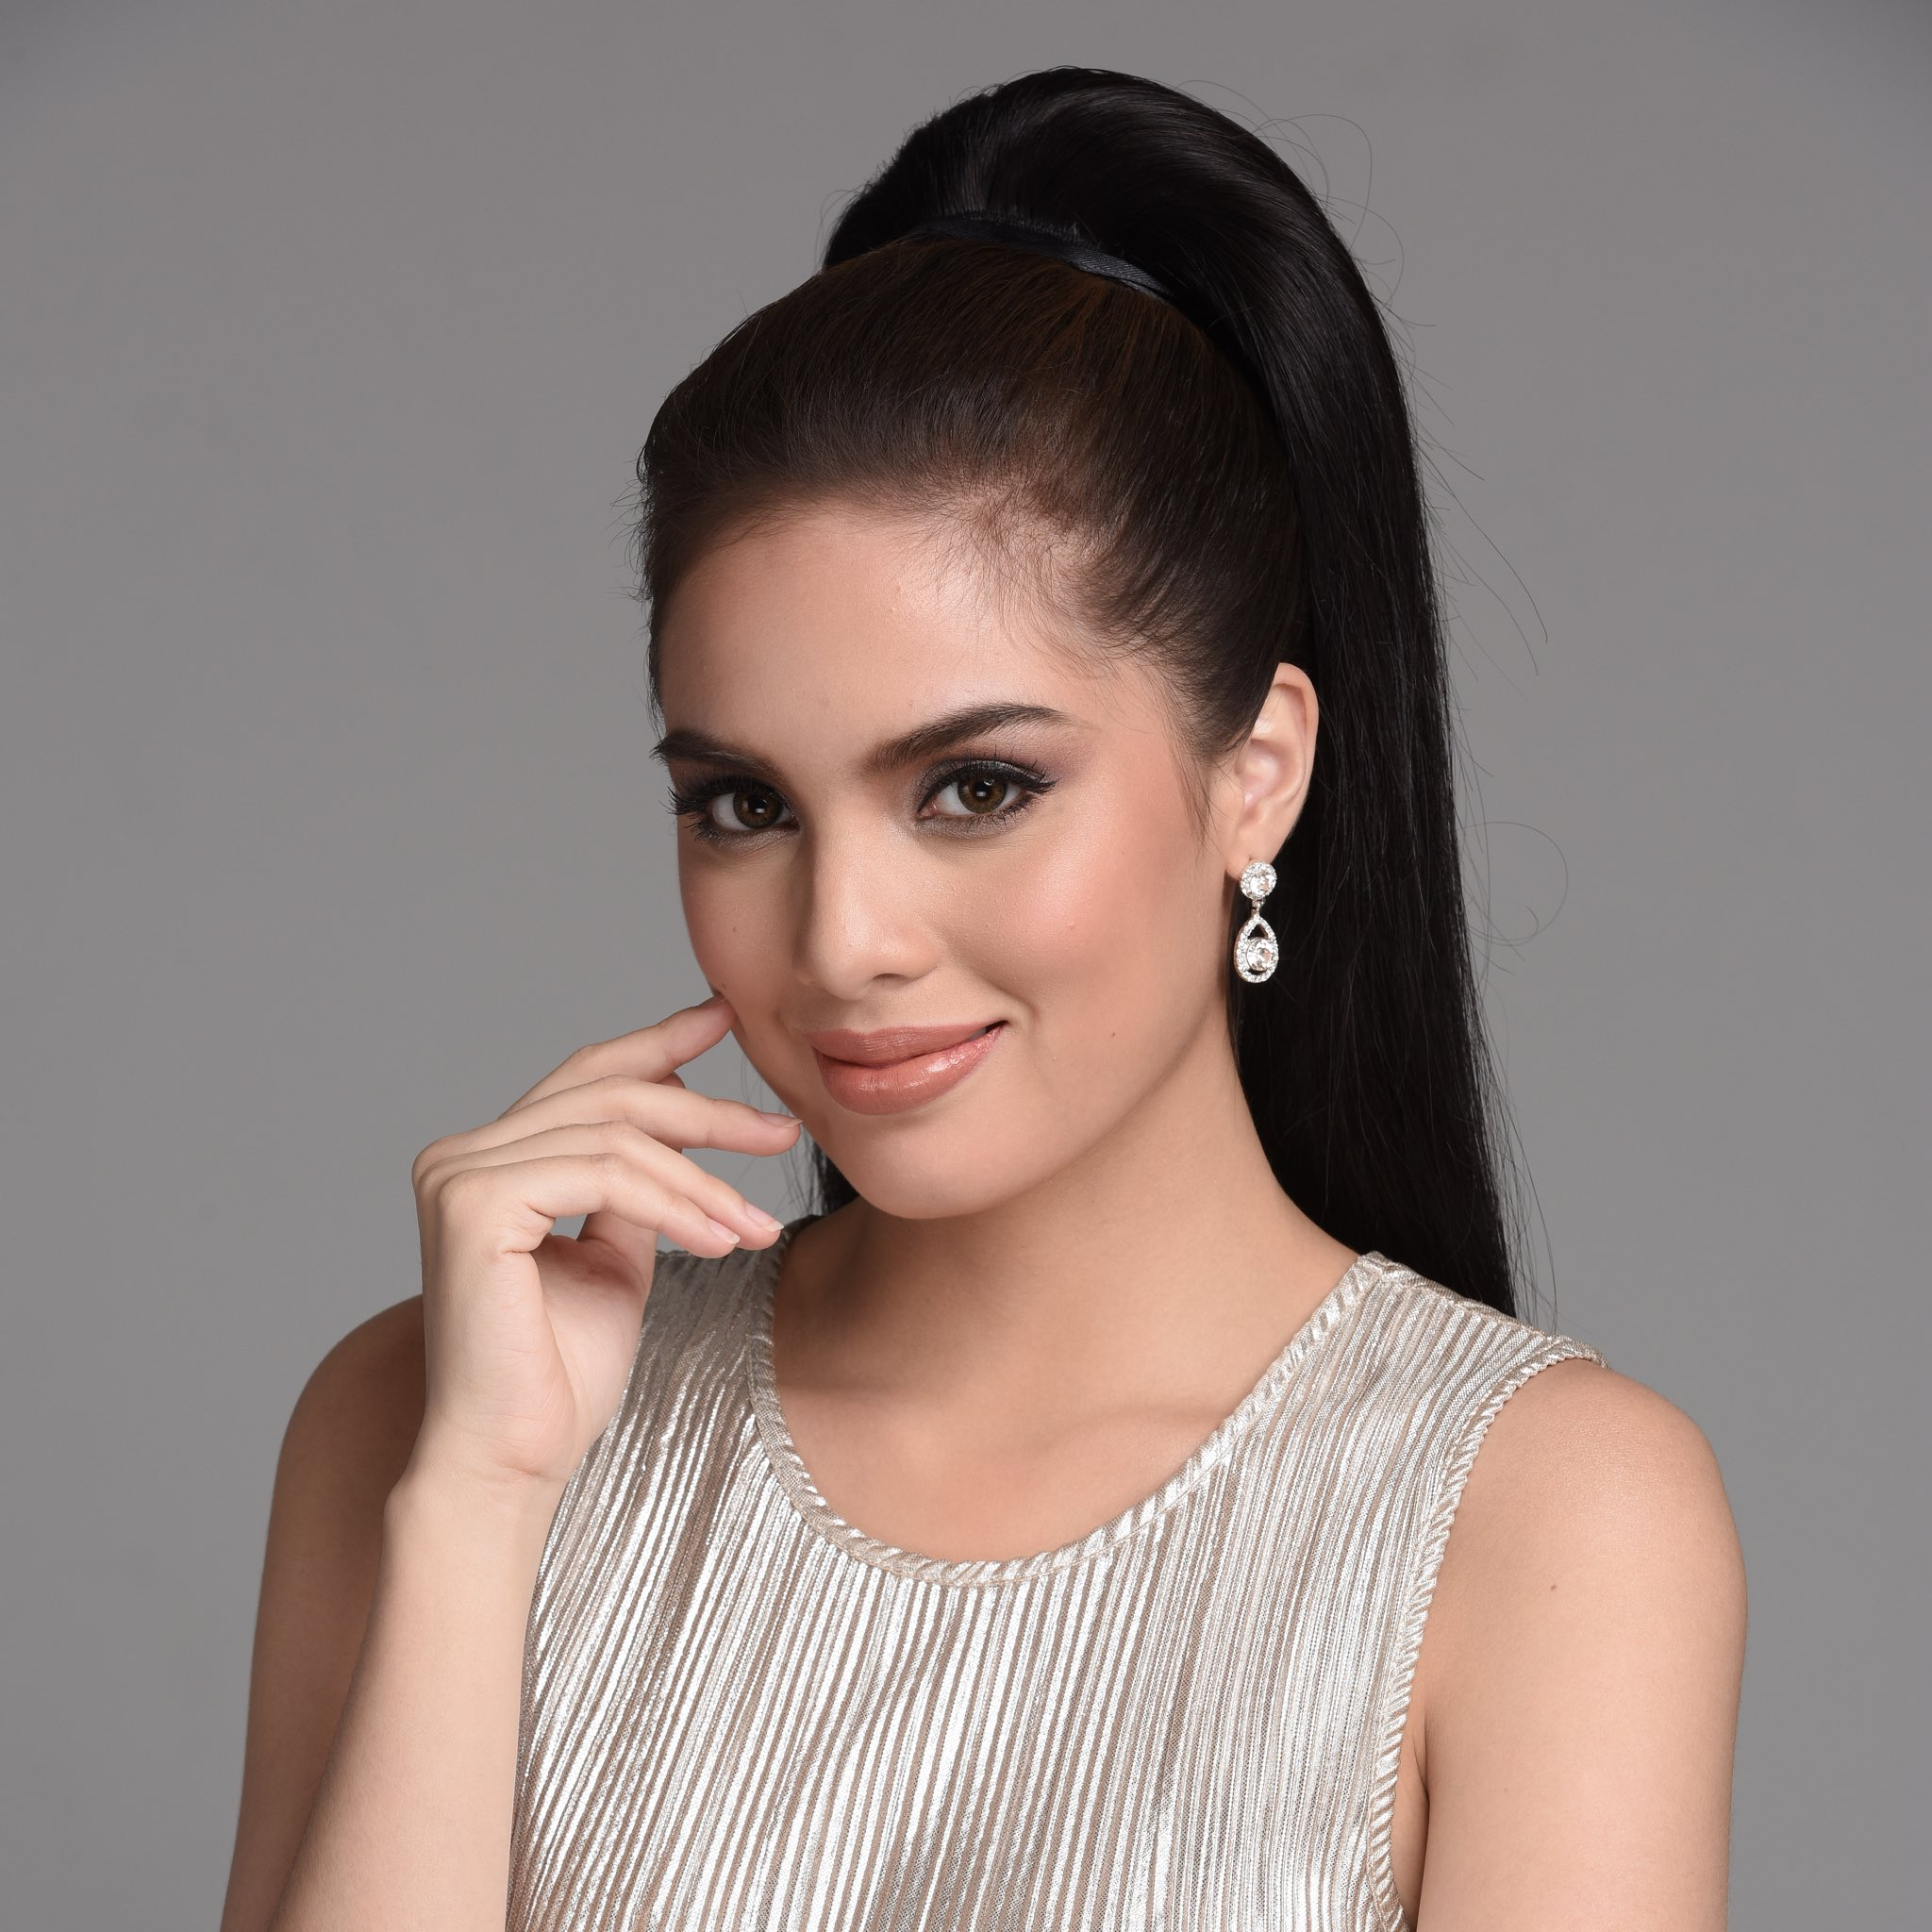 Southern Seazons Top 5 Posts Of 2015: Future Miss Philippines